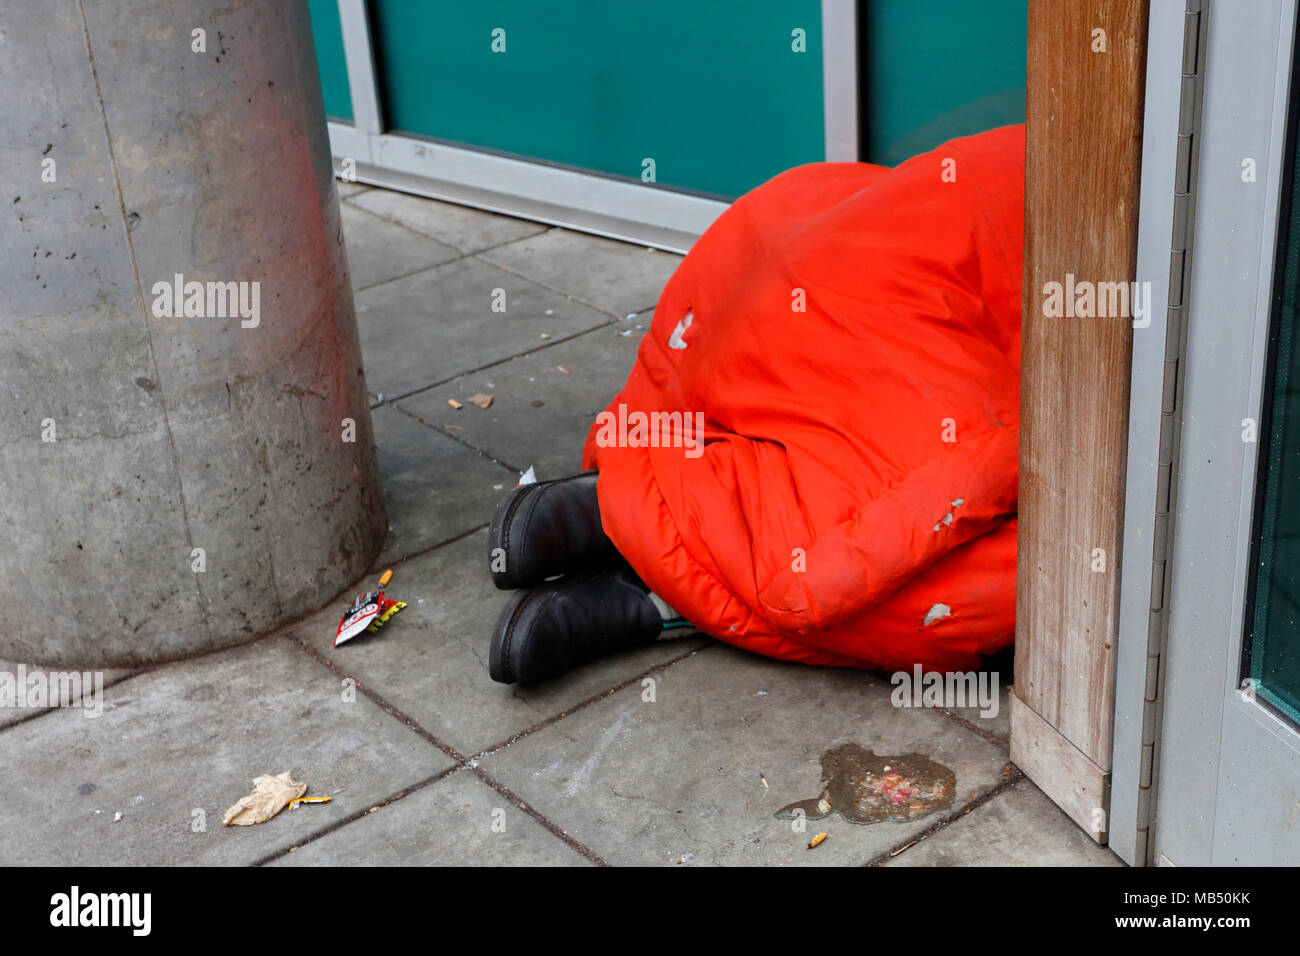 A homeless person under a sleeping bag in downtown - Stock Image